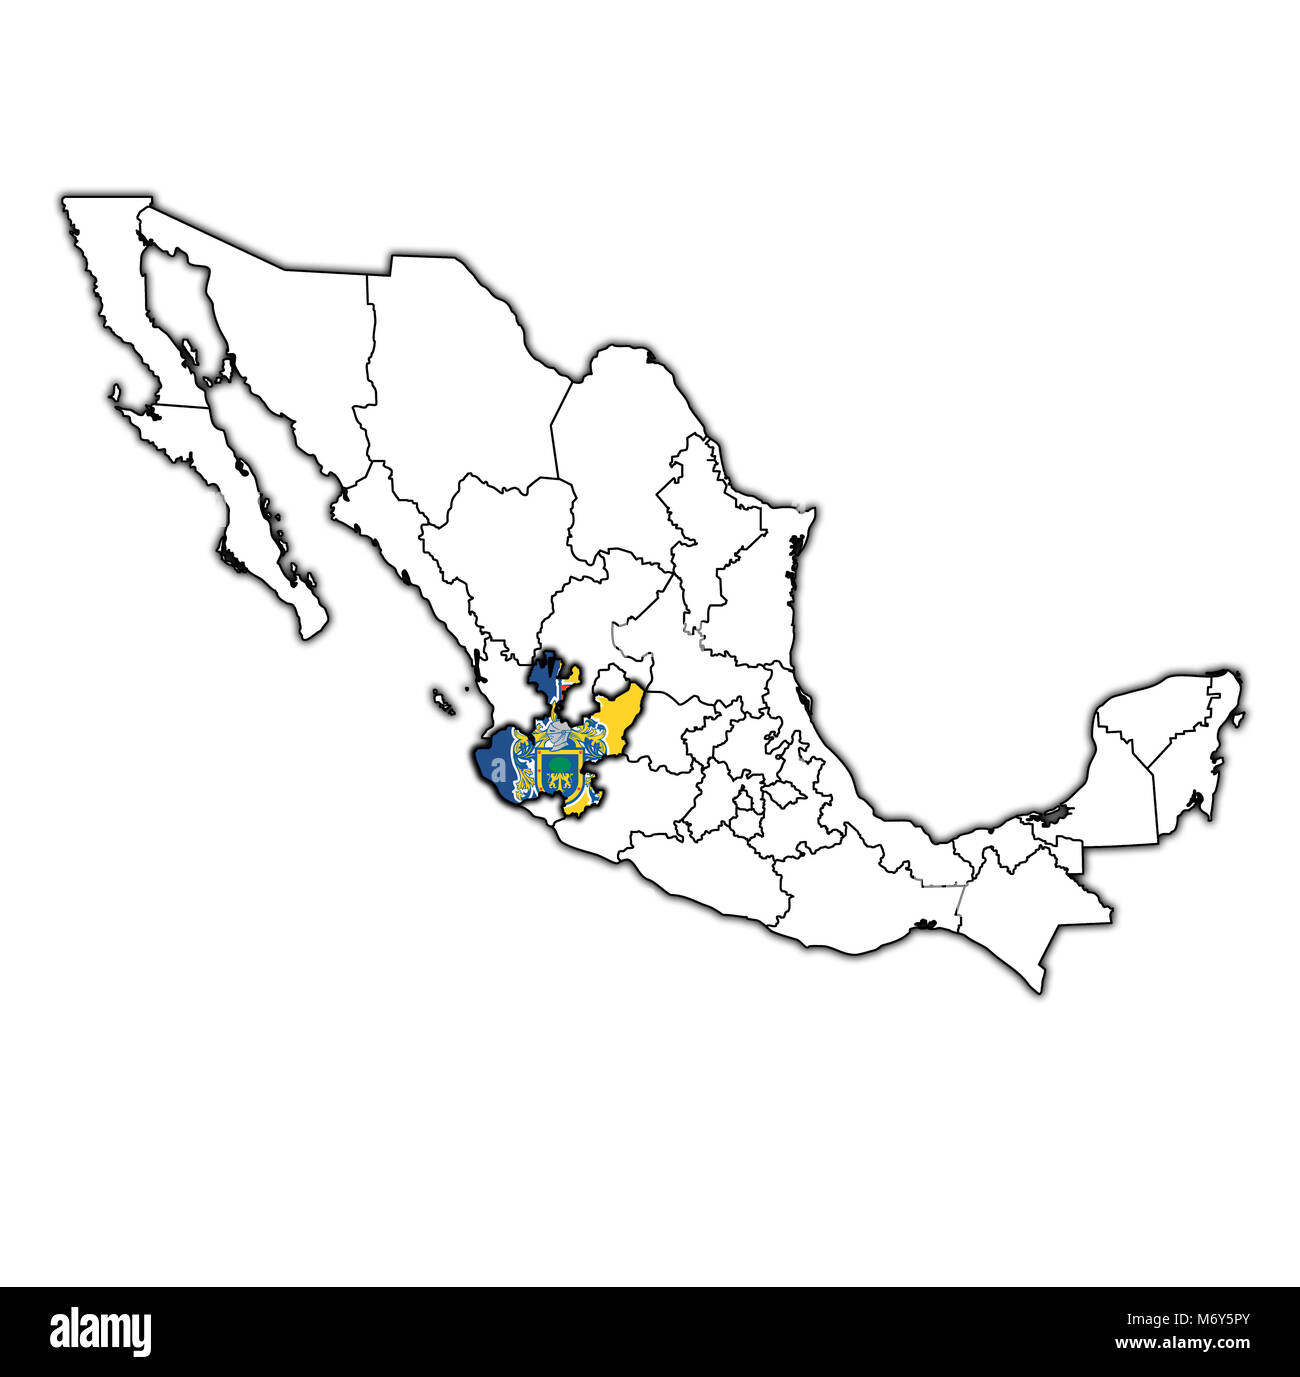 Map Of Jalisco Stock Photos & Map Of Jalisco Stock Images ... Map Of State Jalisco Mexico on san agustin jalisco mexico map, state of chihuahua mexico map, state of durango mexico map, state of hidalgo mexico map, state of veracruz mexico map, state of sinaloa mexico map, state of coahuila mexico map, state of yucatan mexico map, state of sonora mexico map, state of queretaro mexico map, state of jalisco mexico flag, guadalajara mexico map, state of puebla mexico map, state of chiapas mexico map,